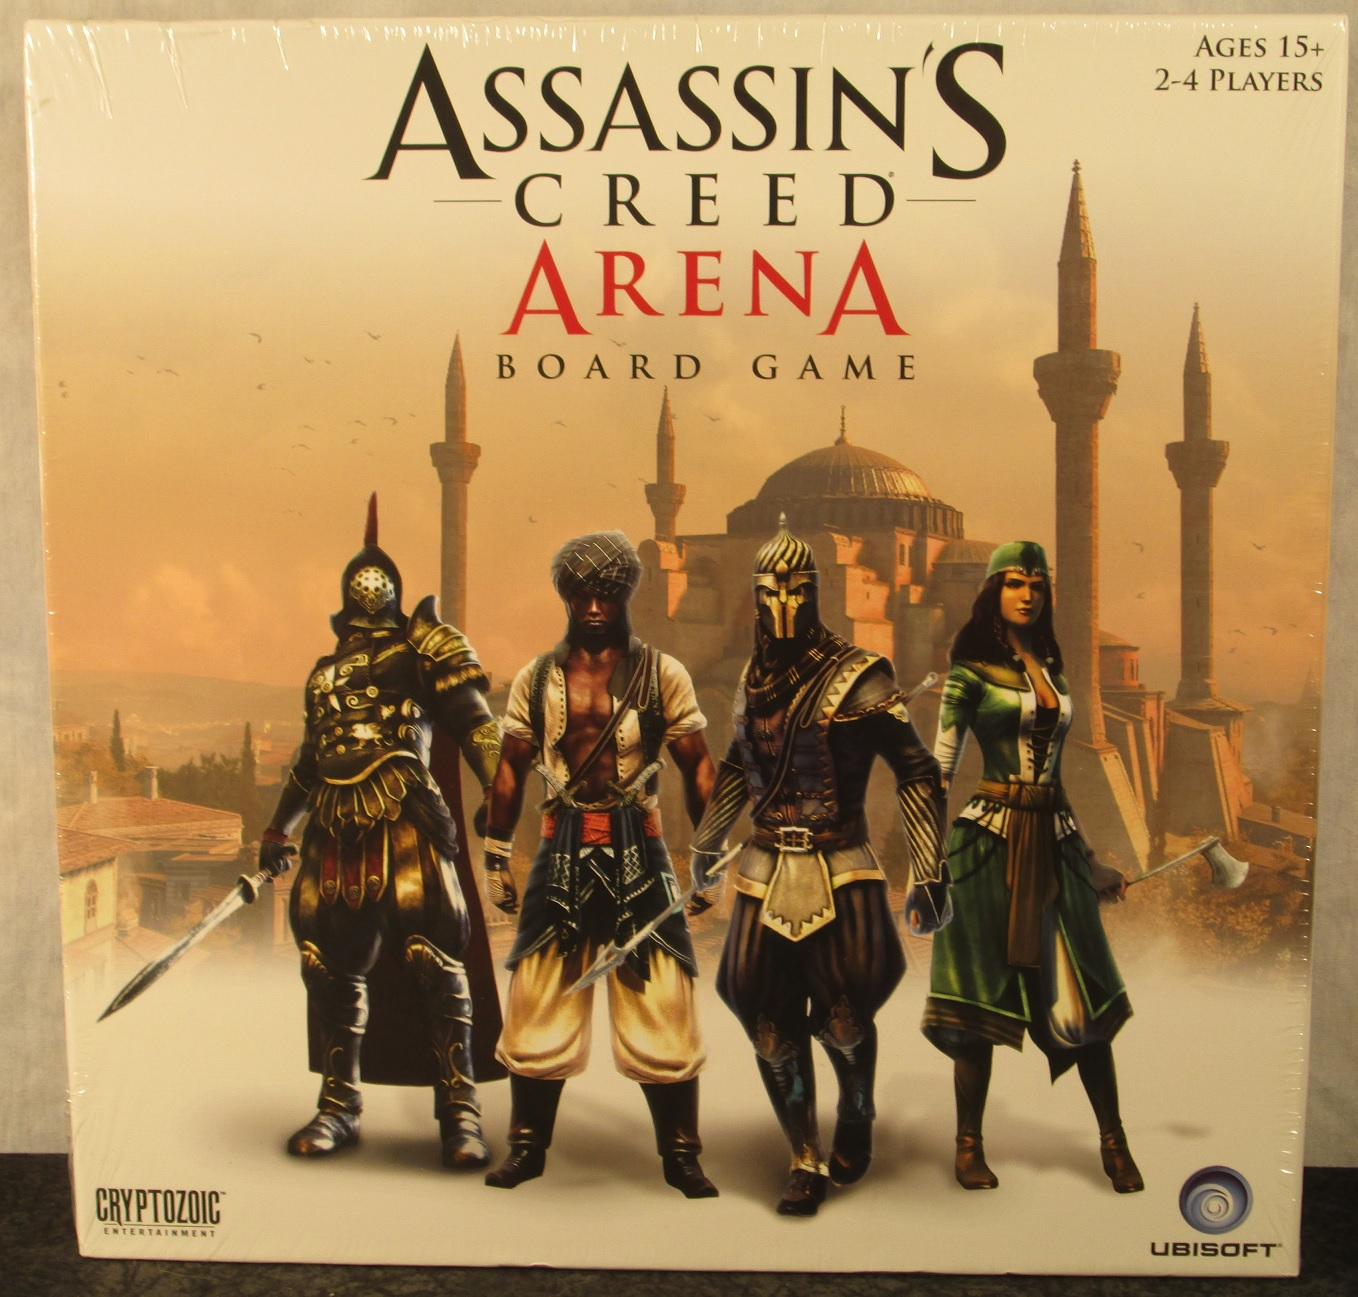 Cryptozoic - Assassin's Creed Arena Game #CRY-1695